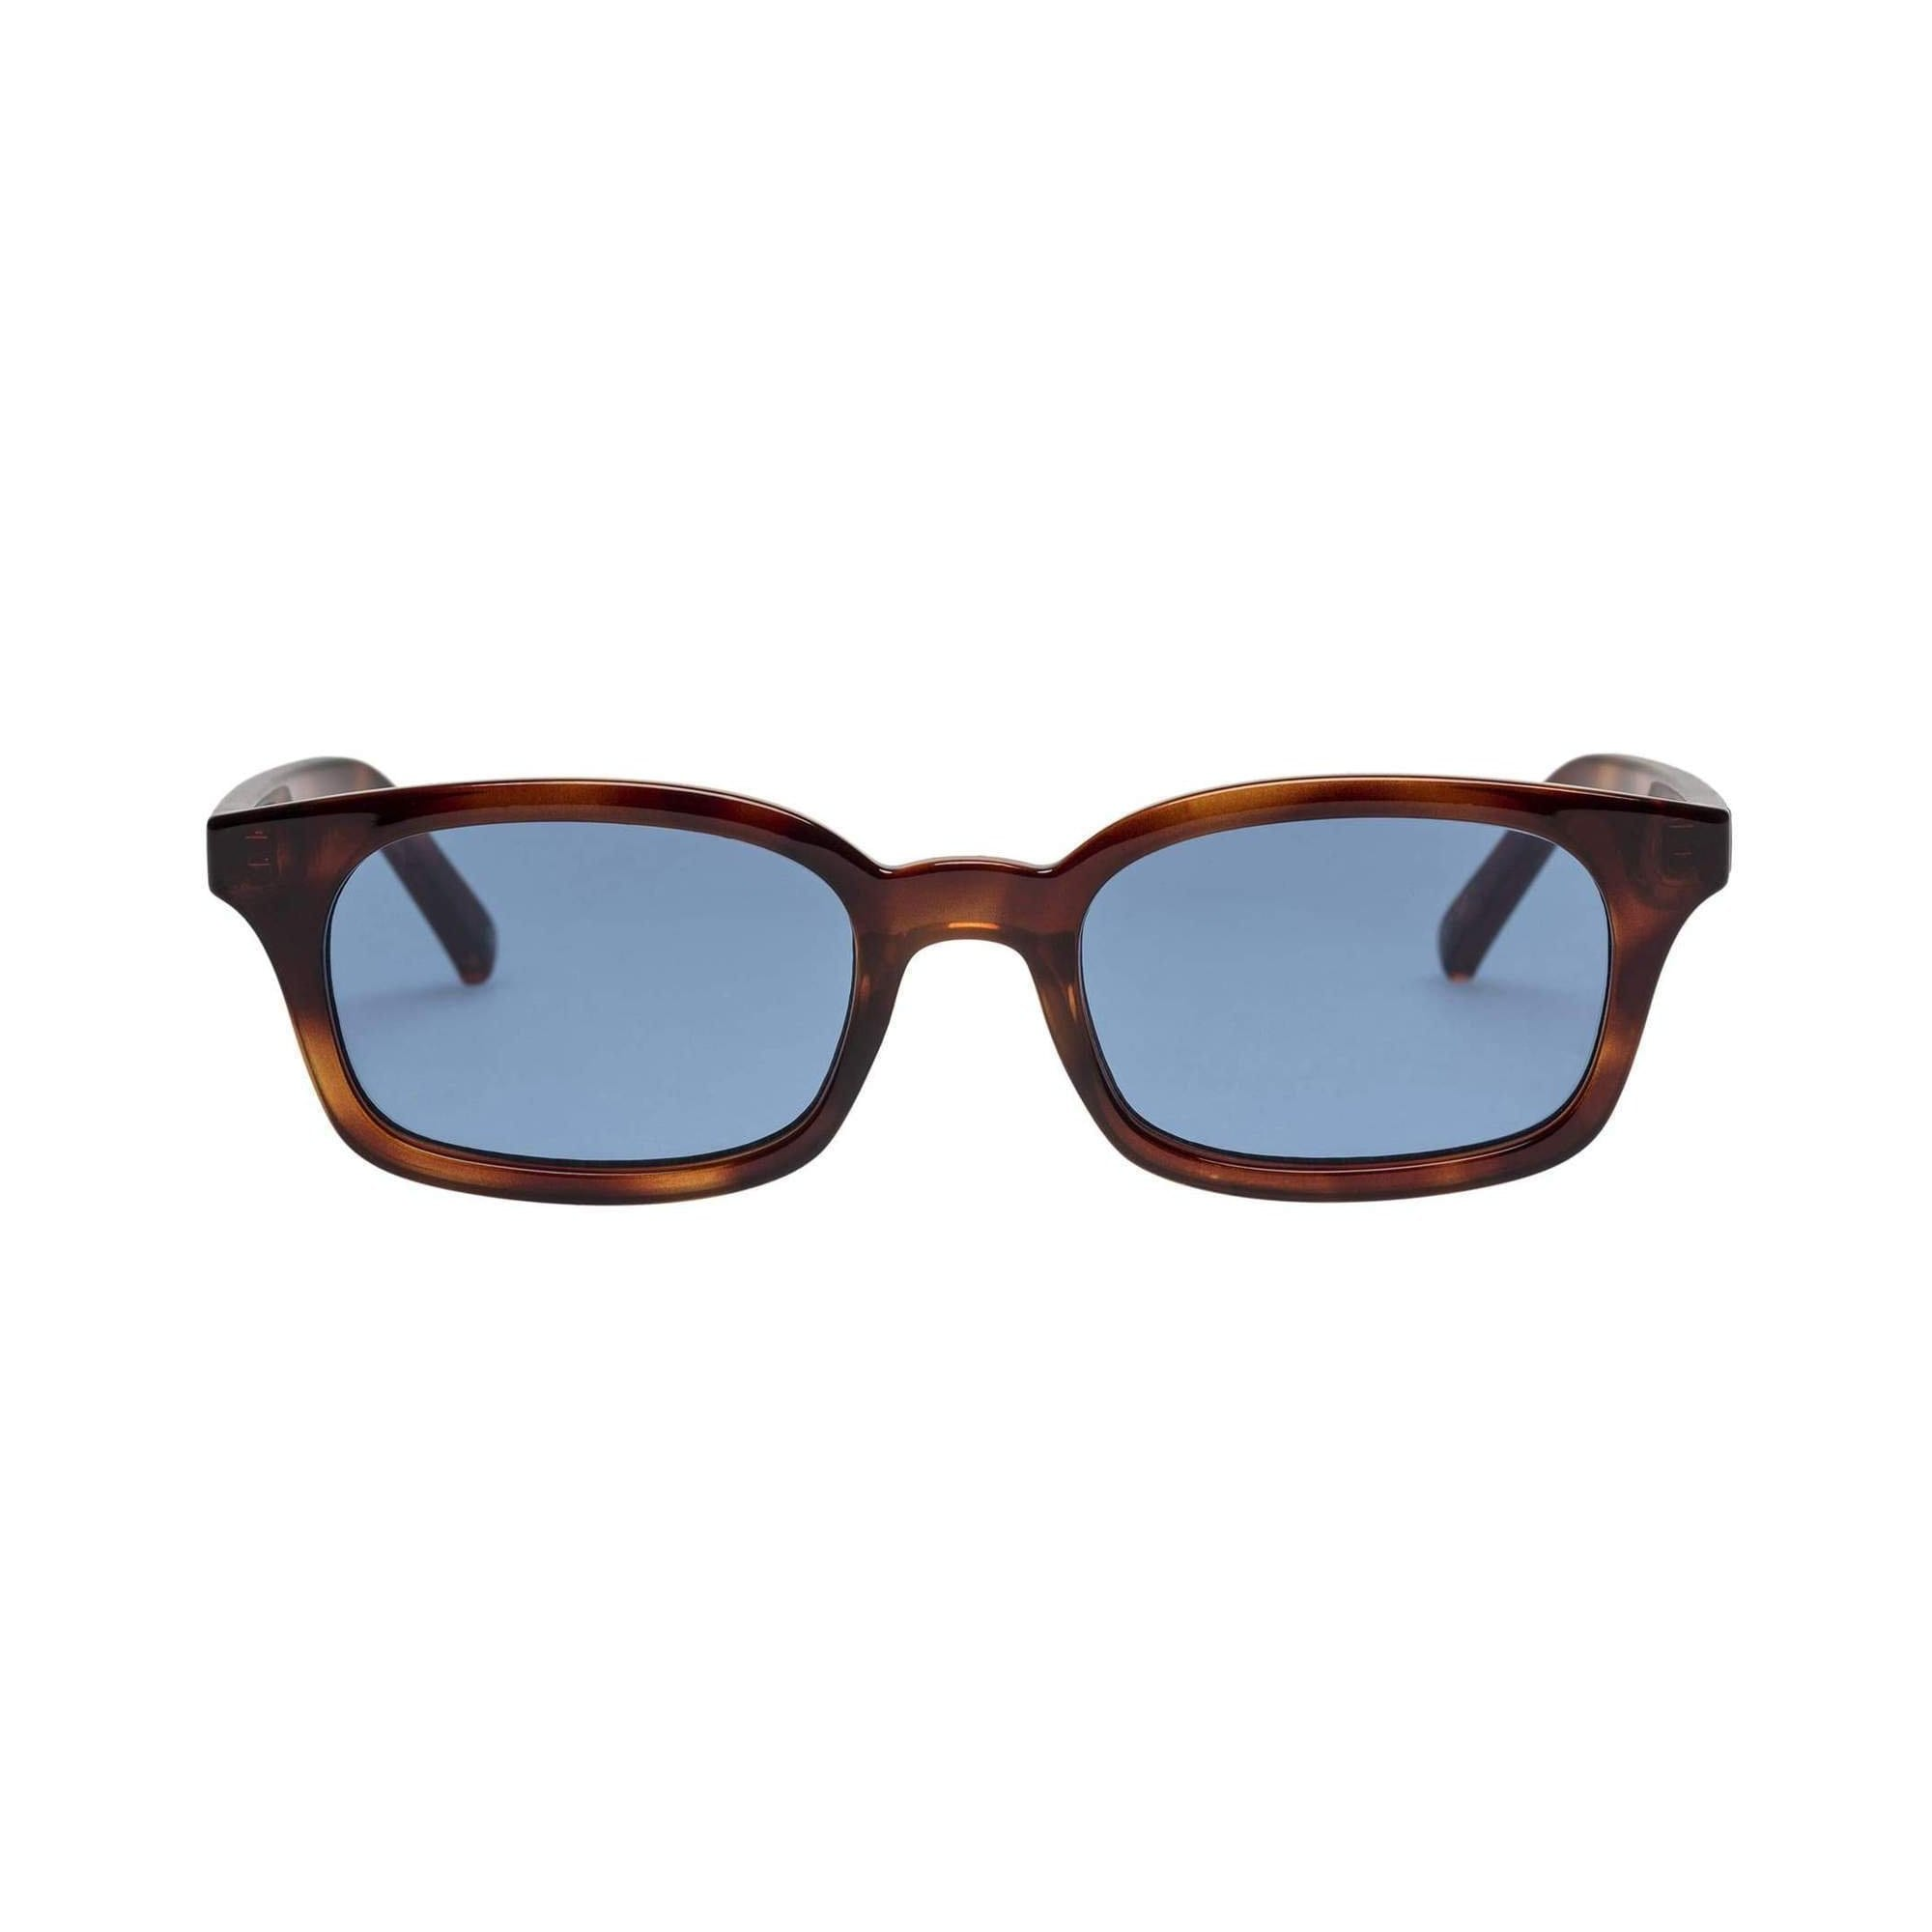 Carmito Sunglasses / Neighborhood Goods